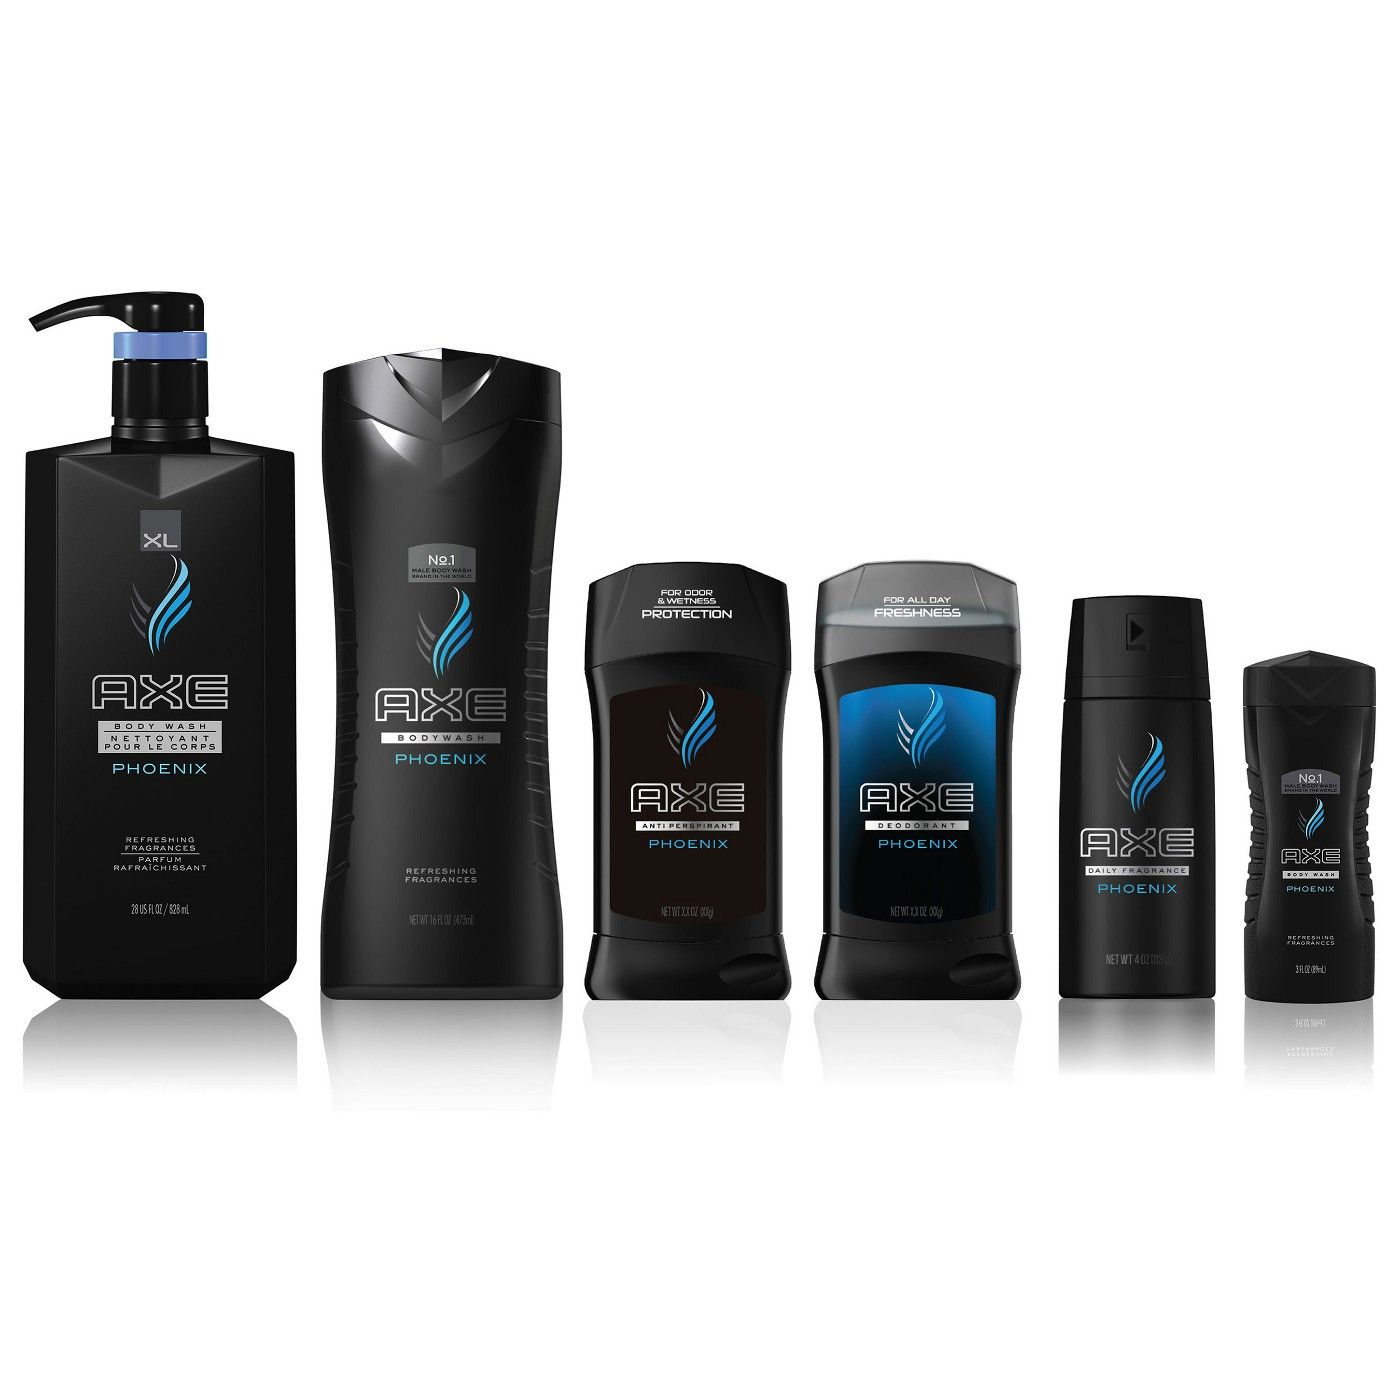 Axe Phoenix Clean Cool Crushed Mint Rosemary Scent Body Wash Soap 16 Fl Oz Body Wash Shower Gel Axe Body Wash